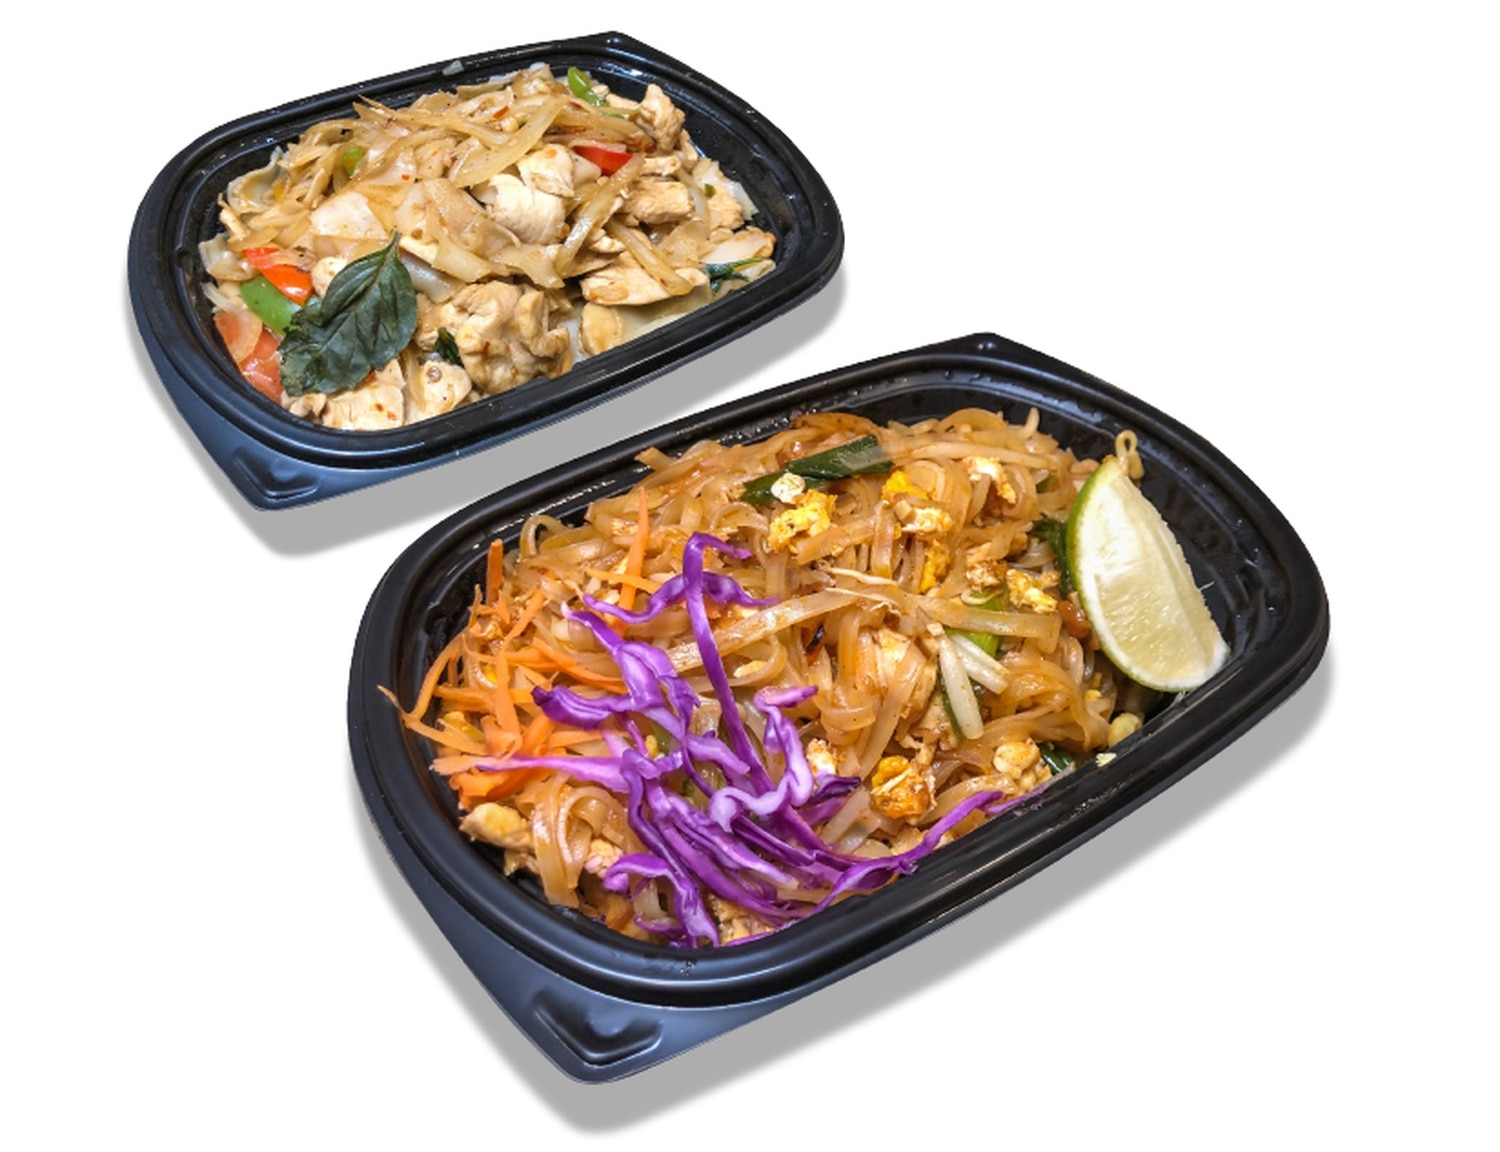 Thai on Canyon's drunken noodle (top) and pad Thai both proved excellent dishes.